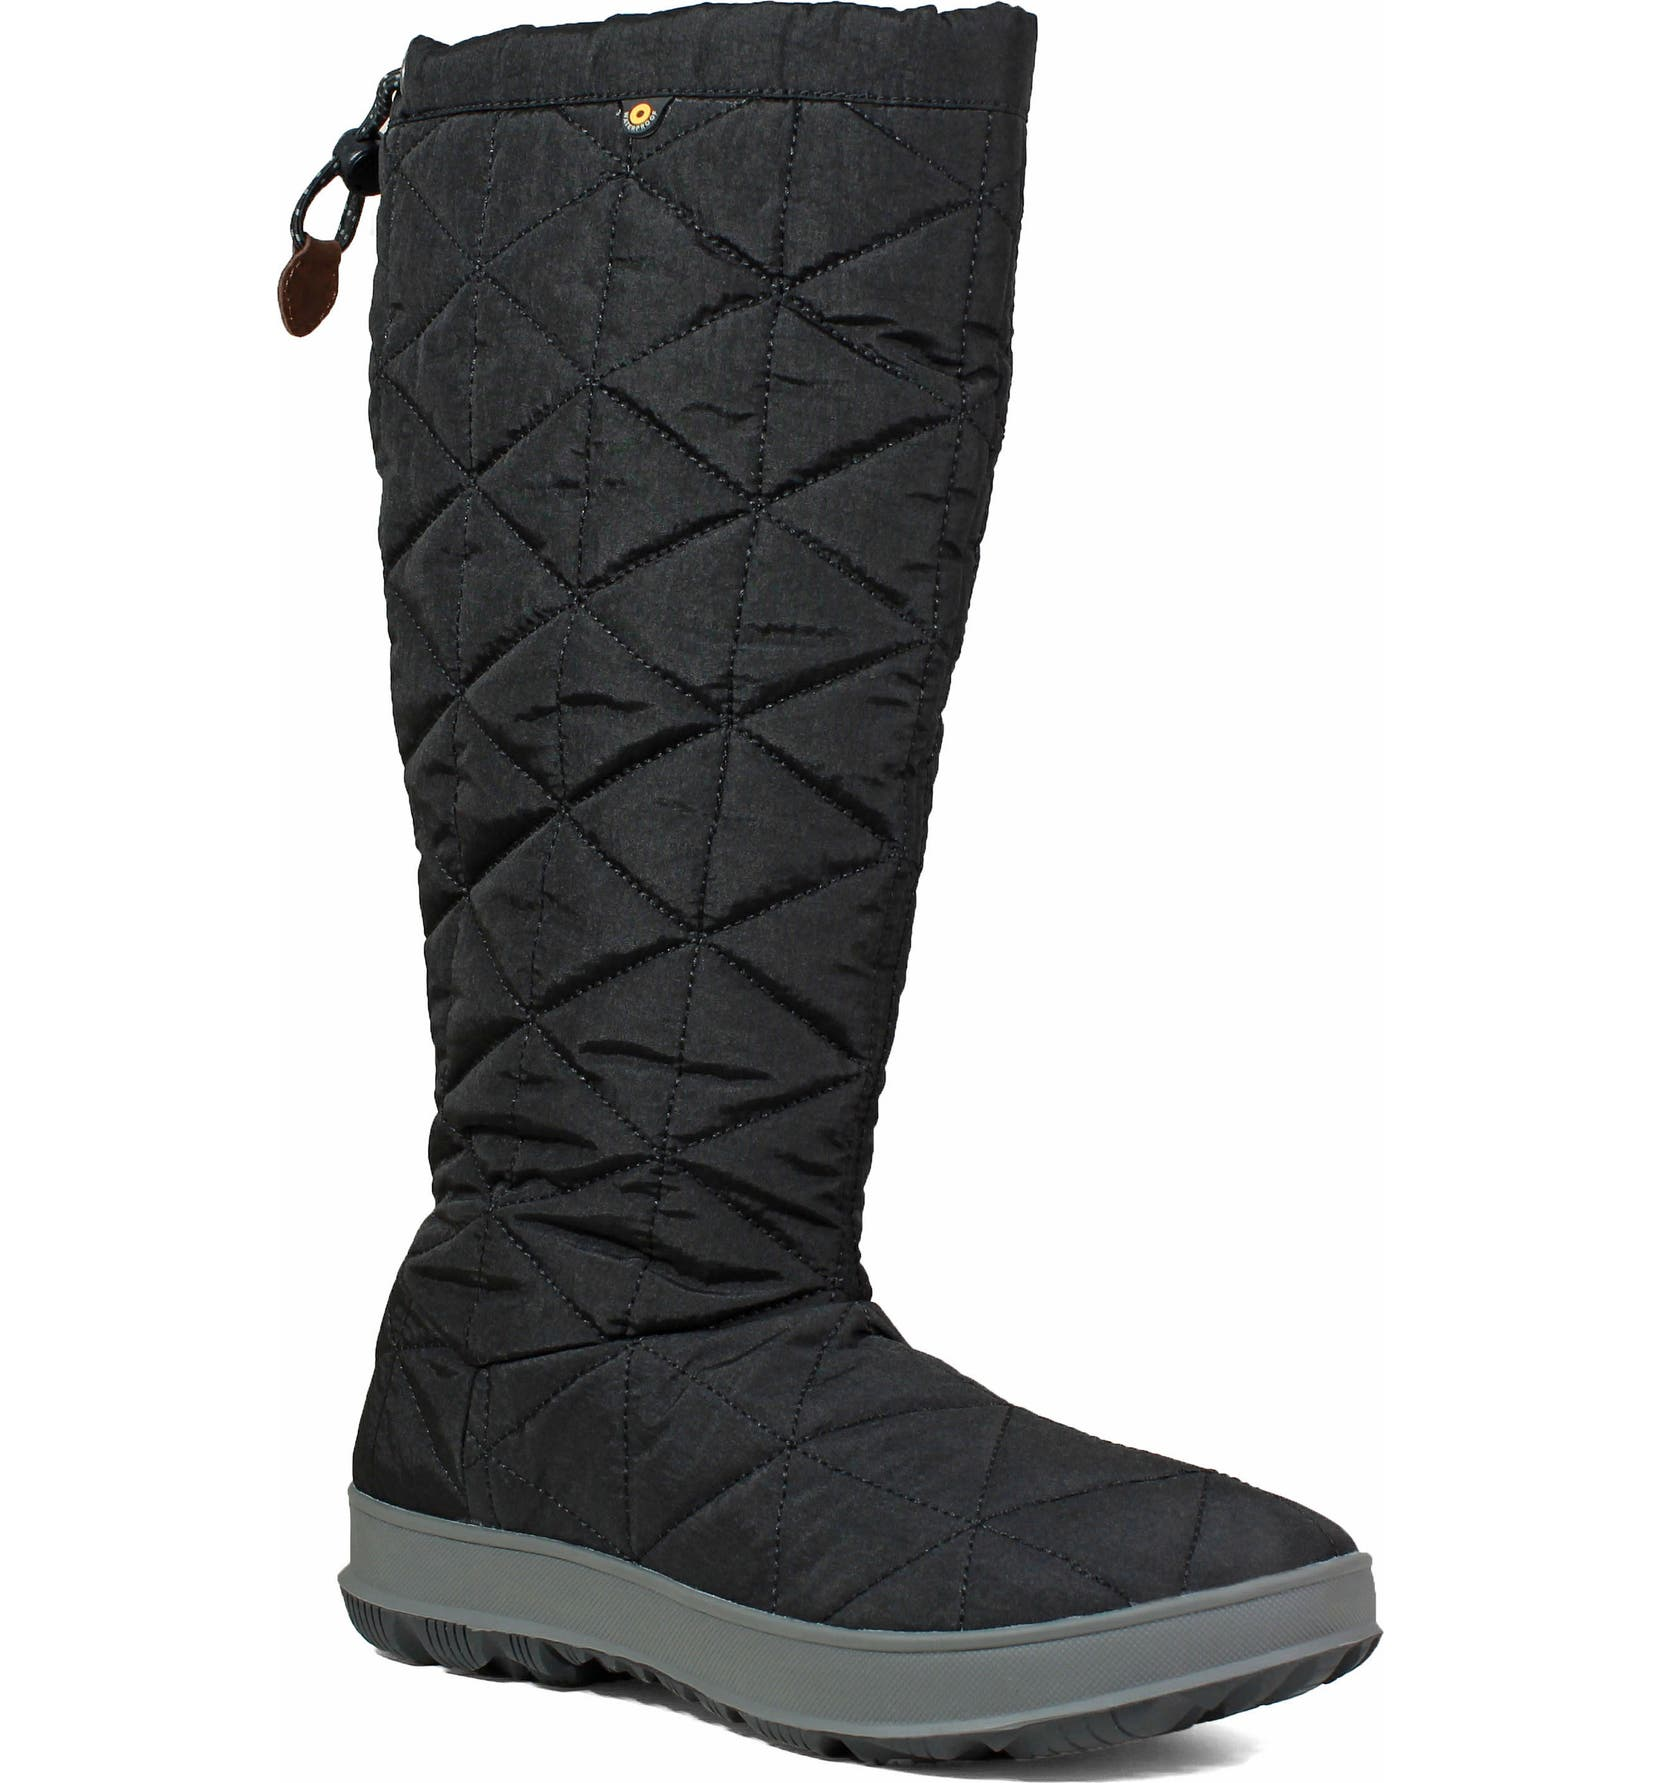 58961c33014 Snowday Tall Waterproof Quilted Snow Boot